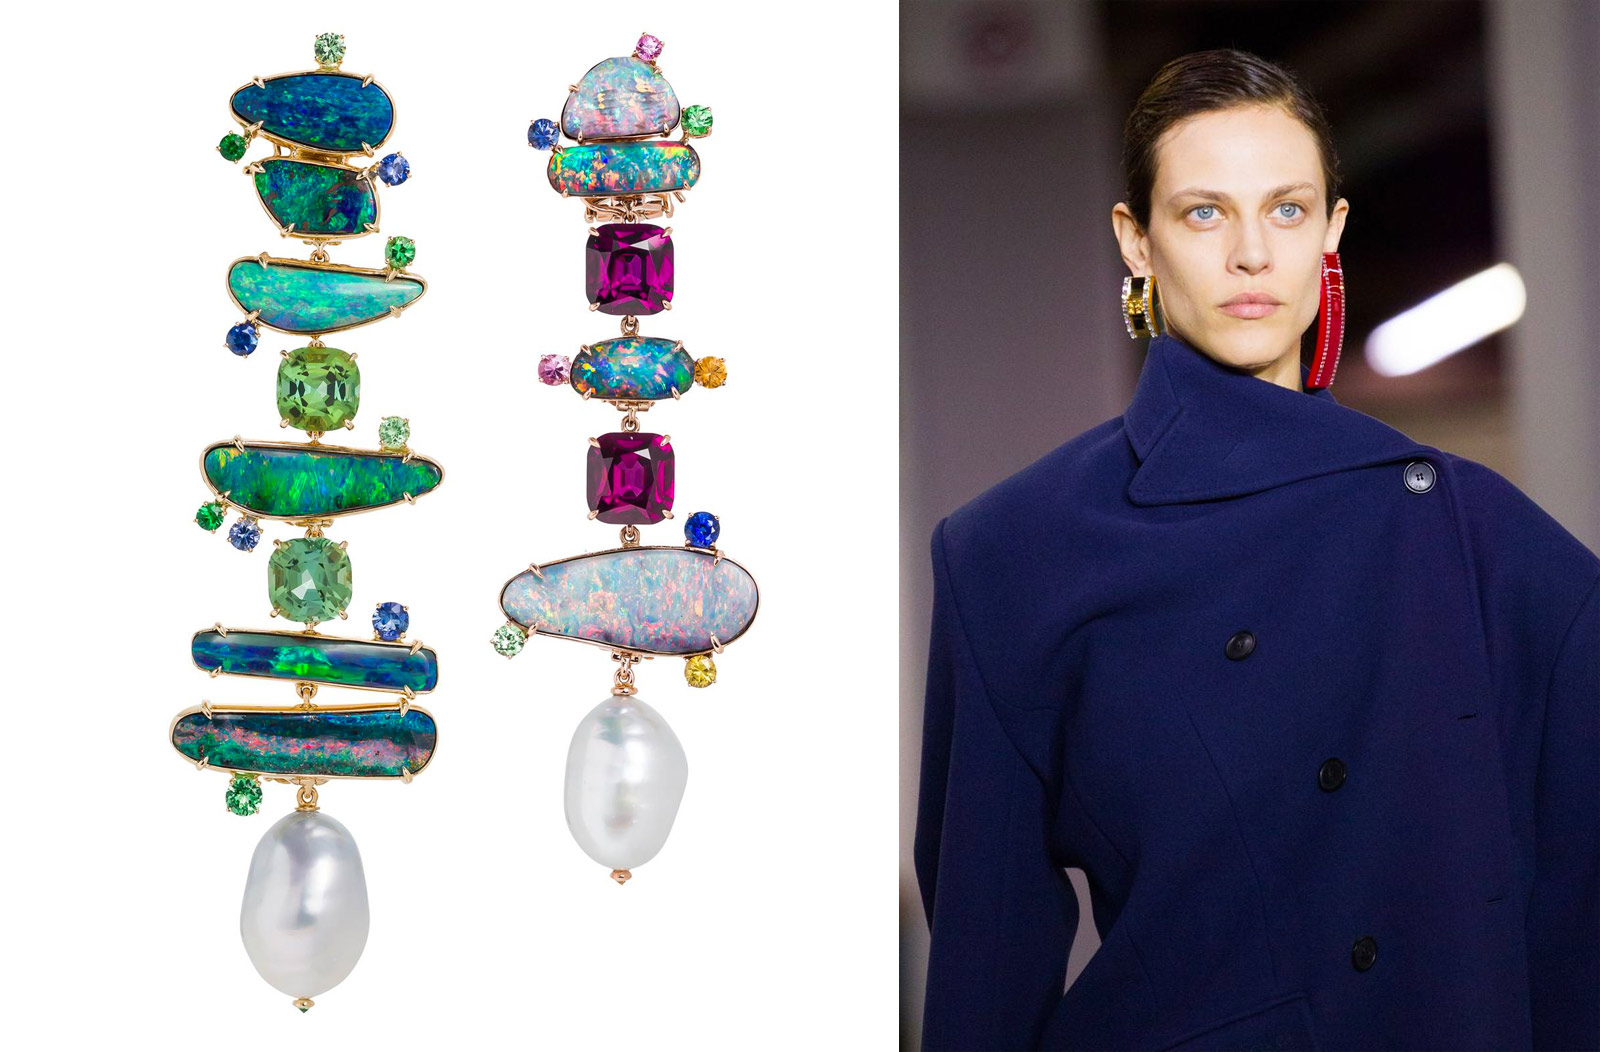 Margot McKinney opal and pearl earrings and Balenciaga Fall/Winter 2018 look